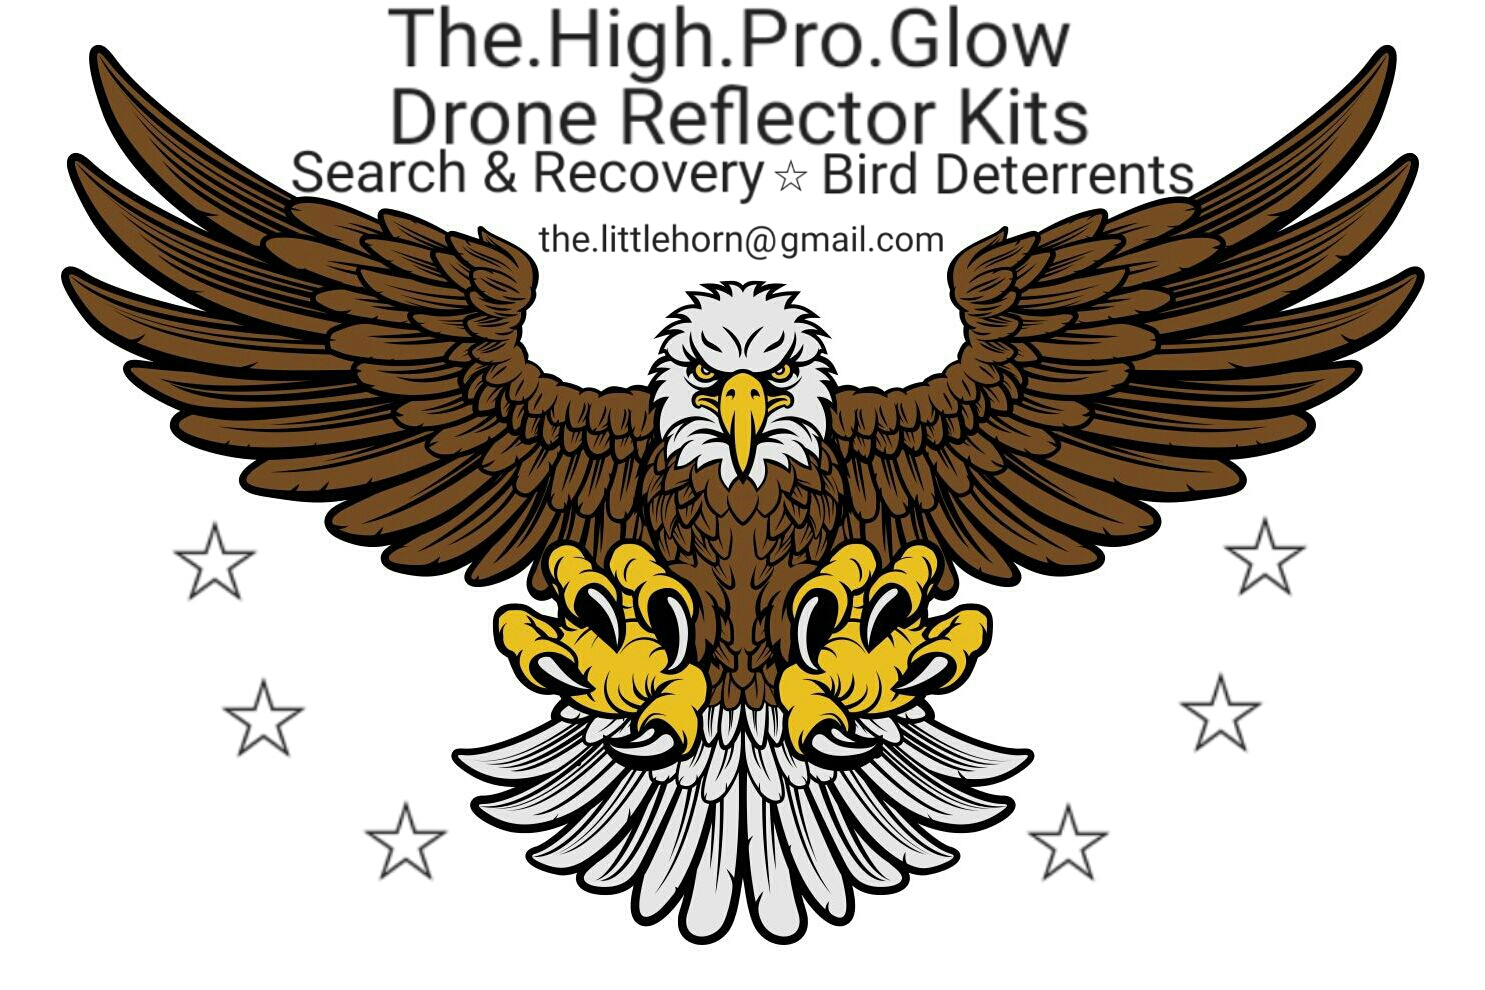 The High Pro Glow: Drone Search & Recovery Solution!